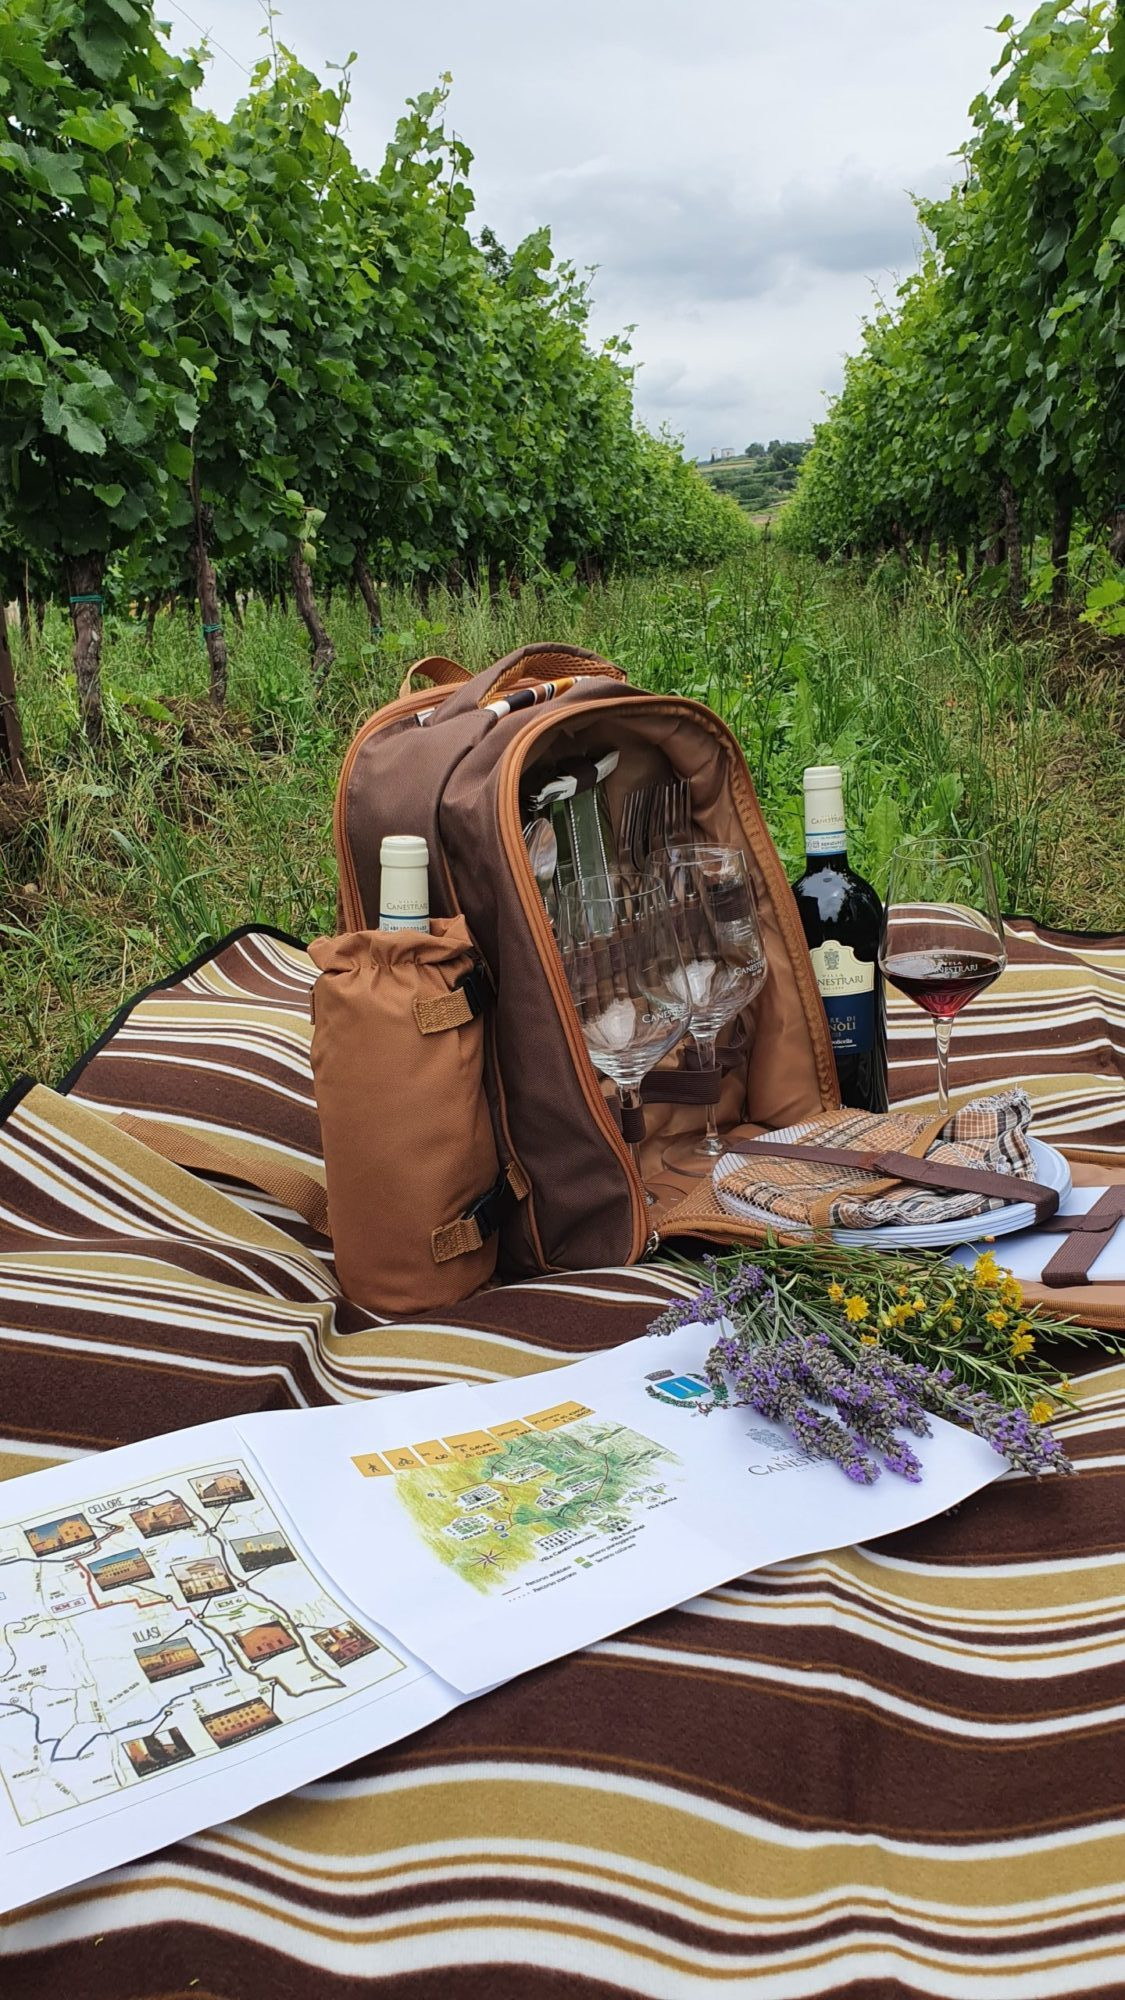 Trekking & Picnic in the Vineyards – Summer 2020